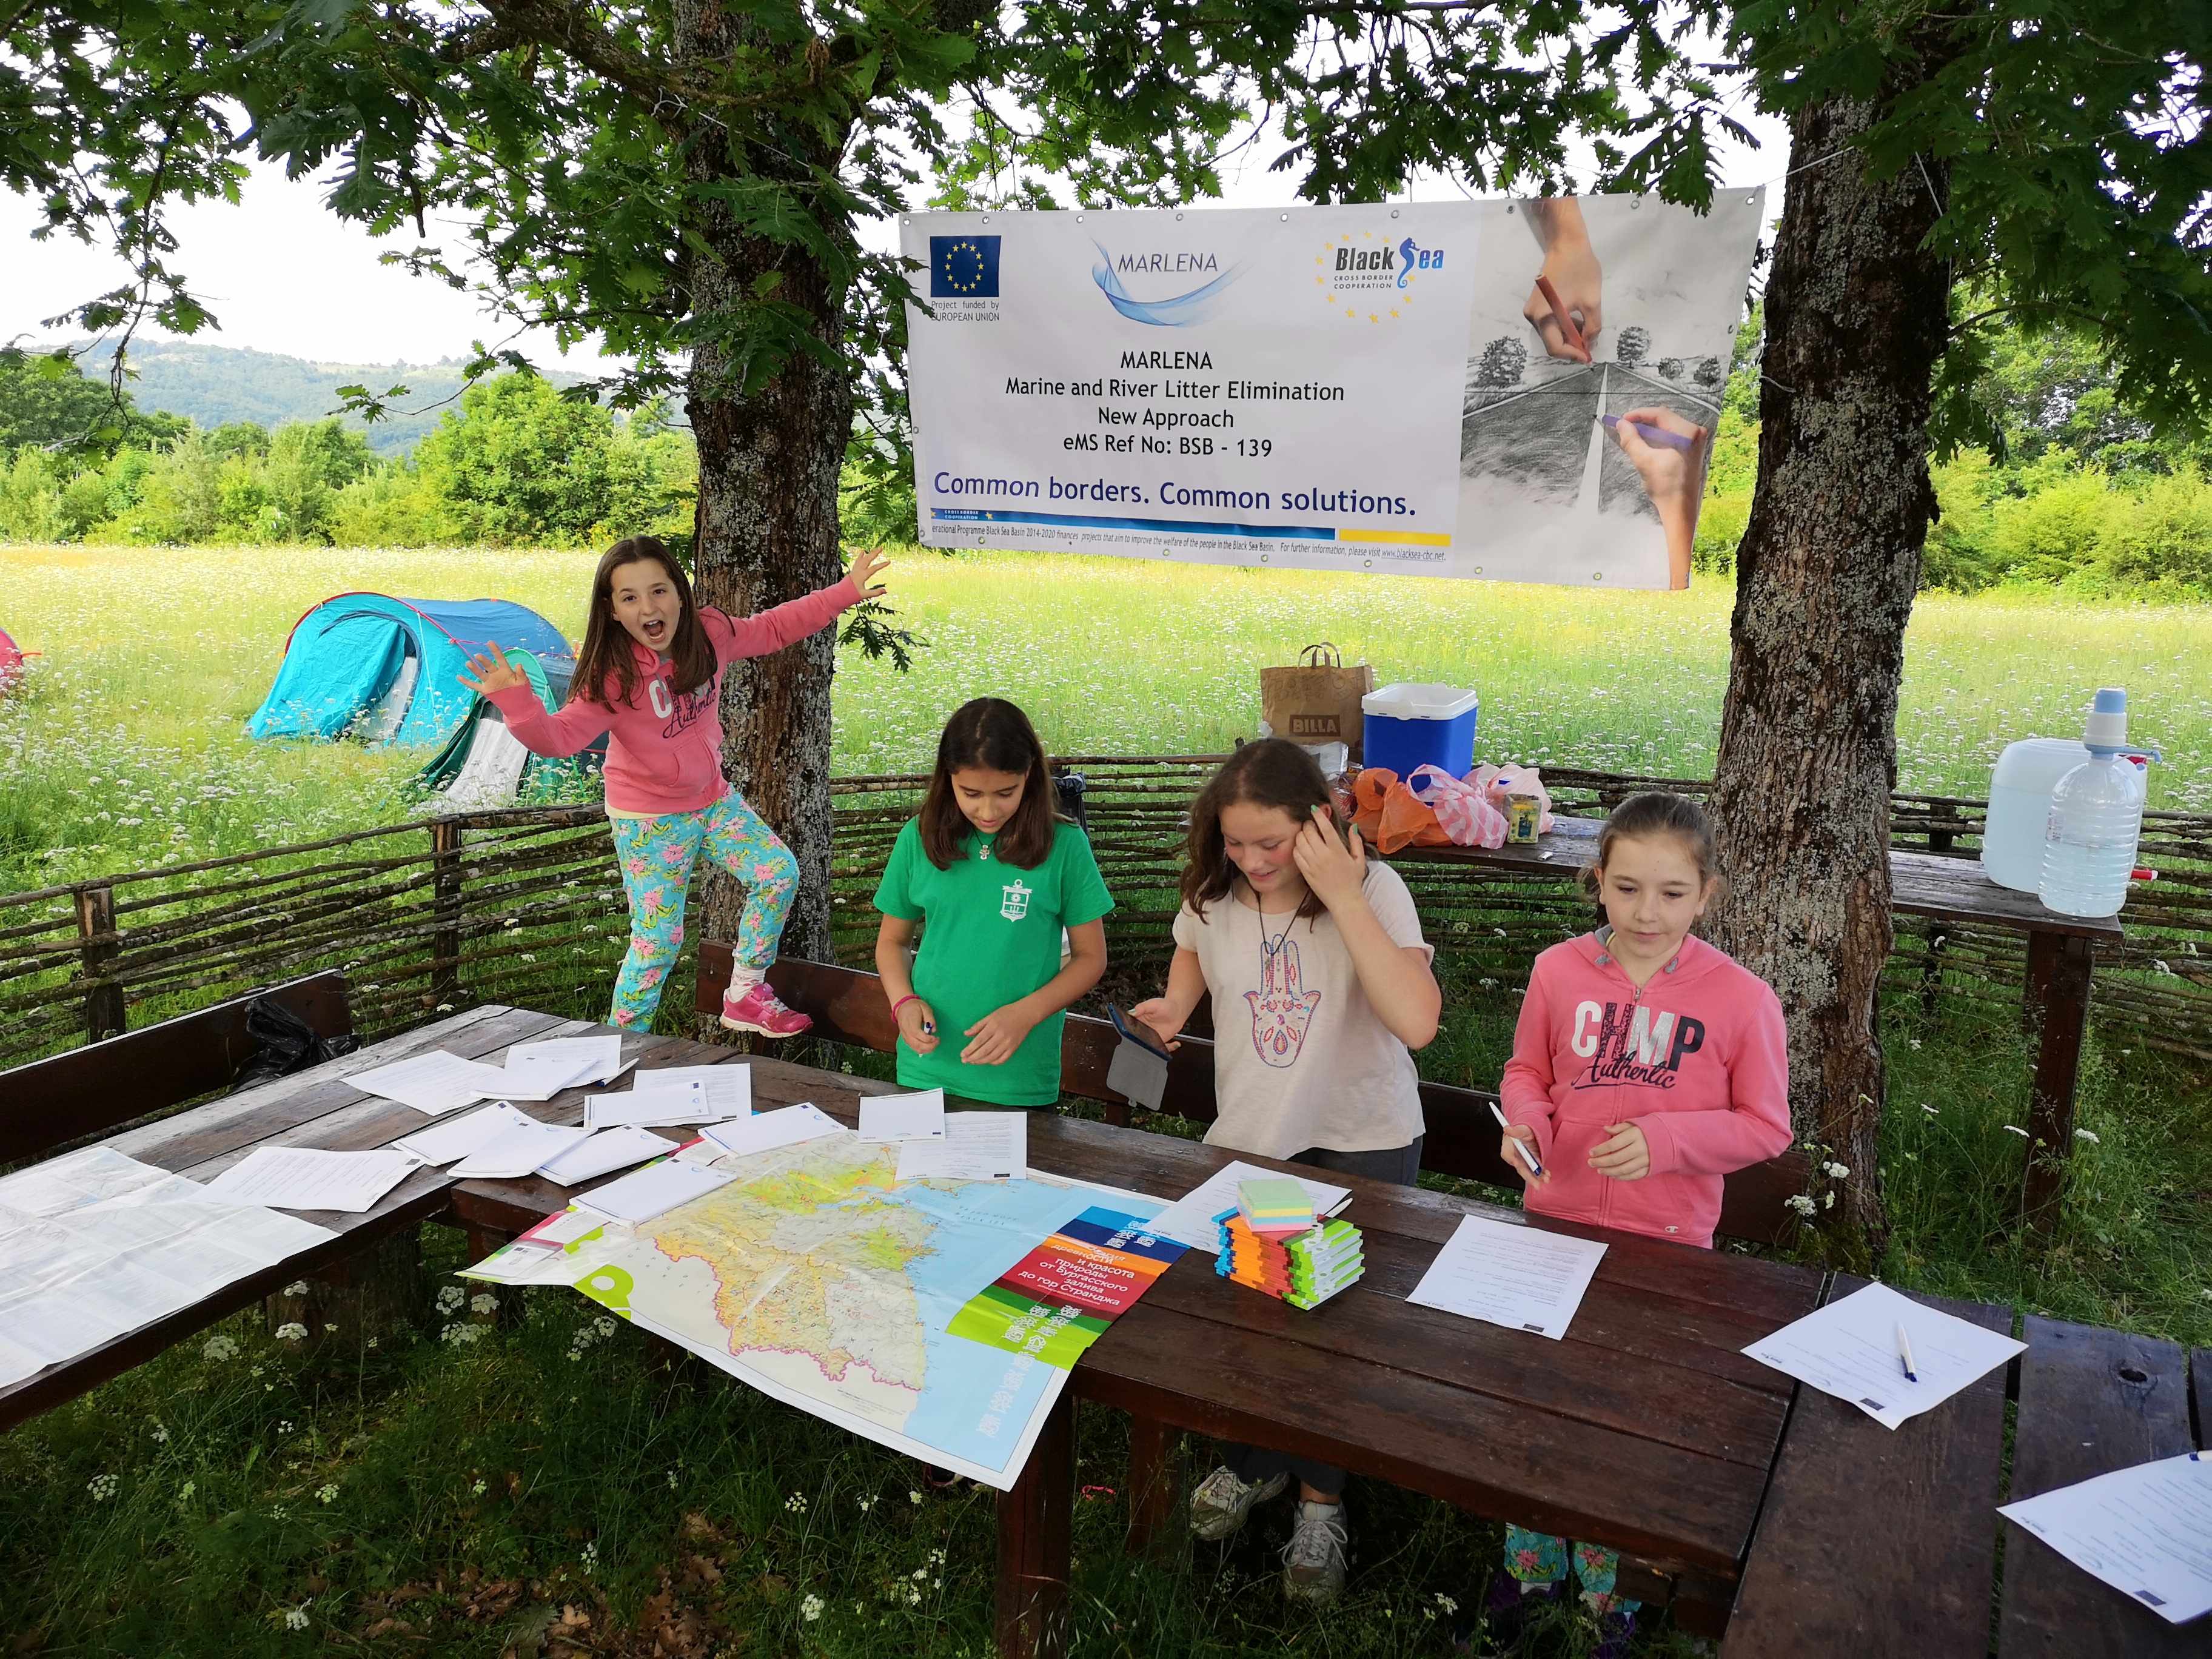 The Internatonal Childrens day was celebrated in Strandzha Nature Park, Bulgaria during an eco-camp under the MARLENA project